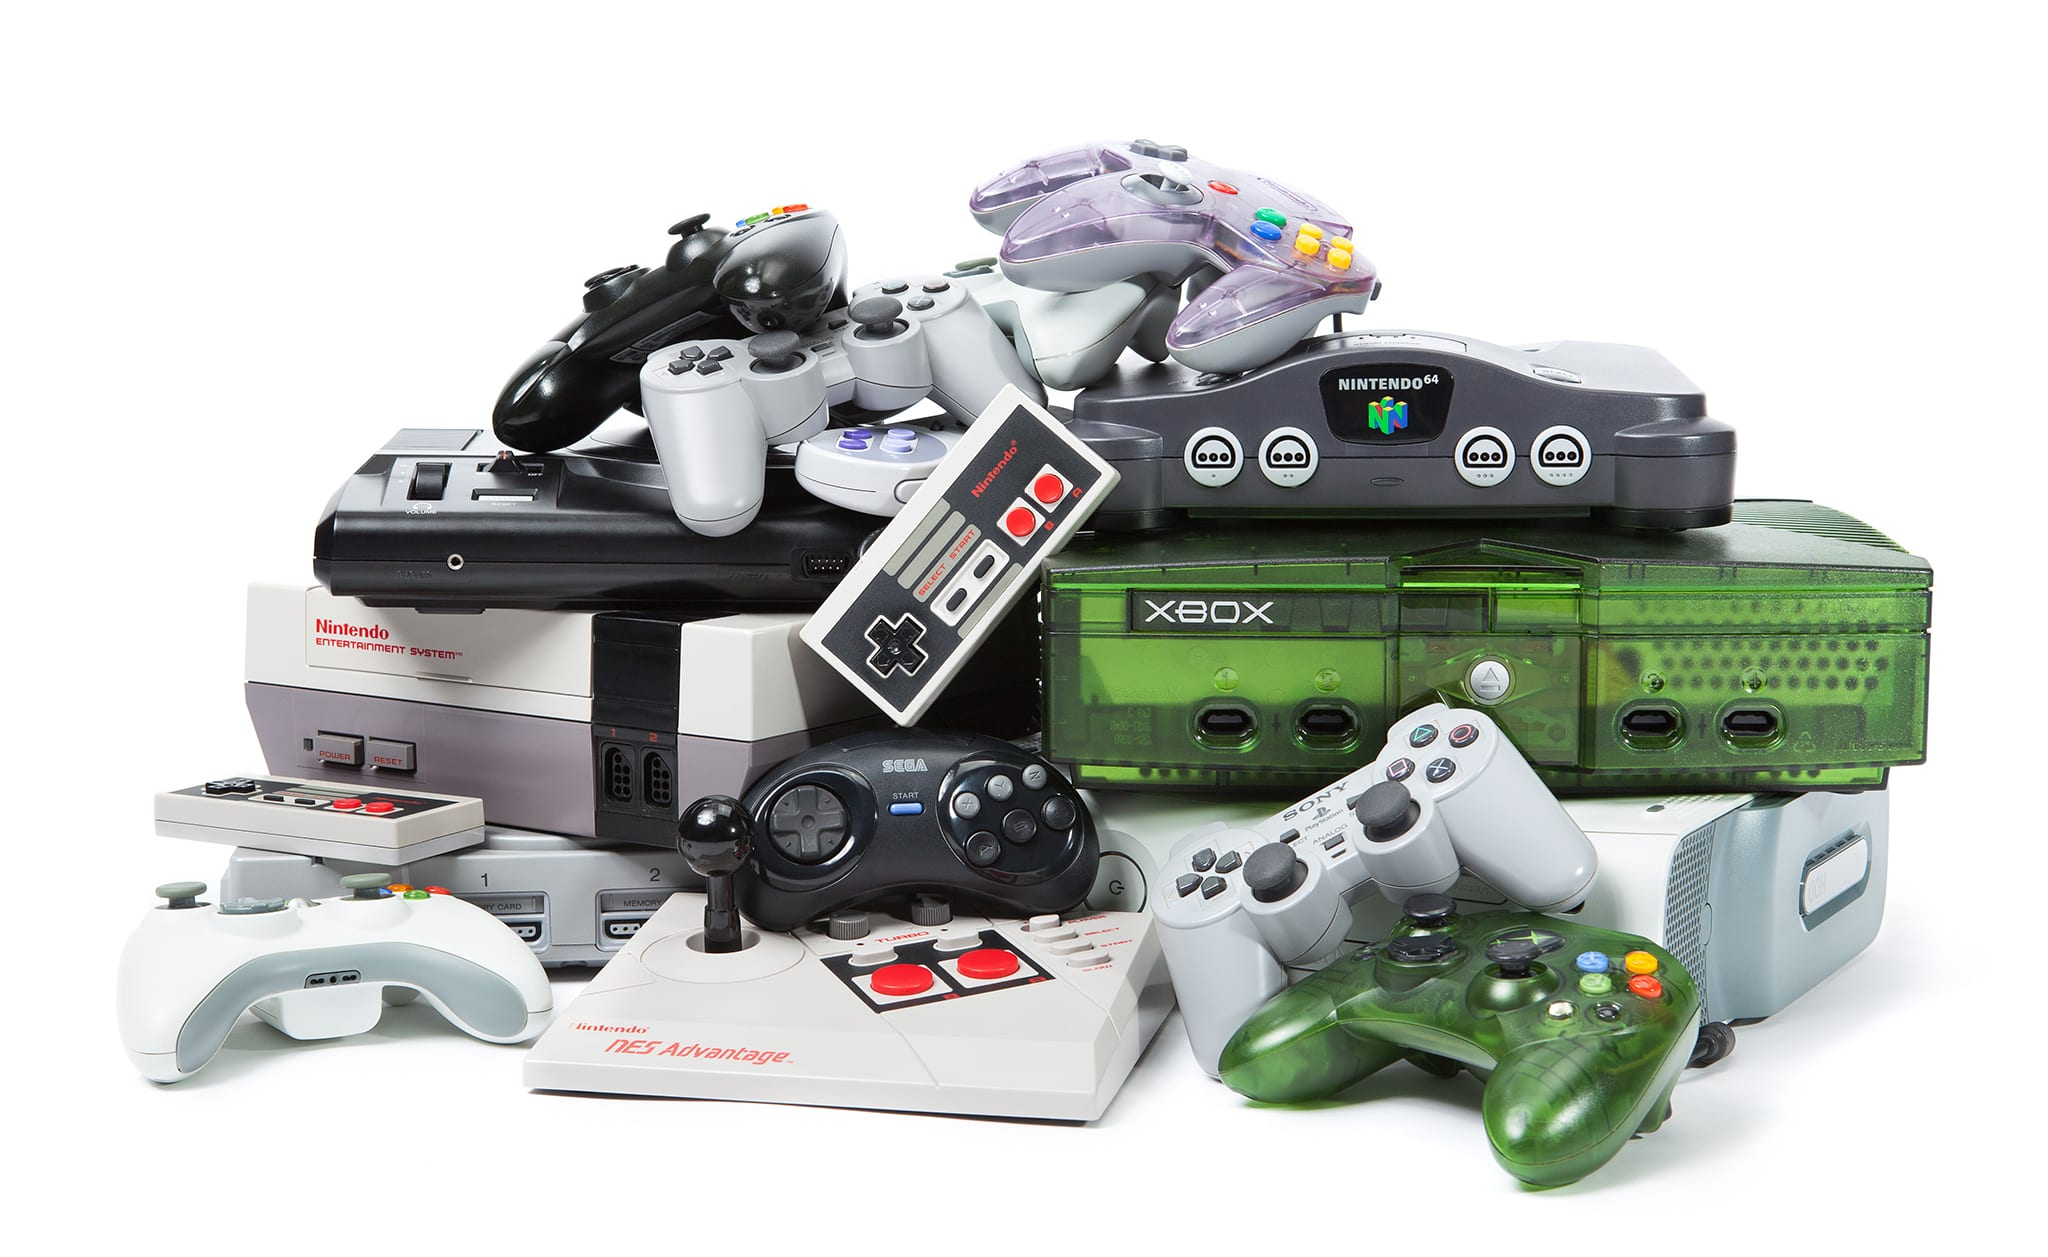 ramzs emporium may just have that hard to find gaming system you have been looking for